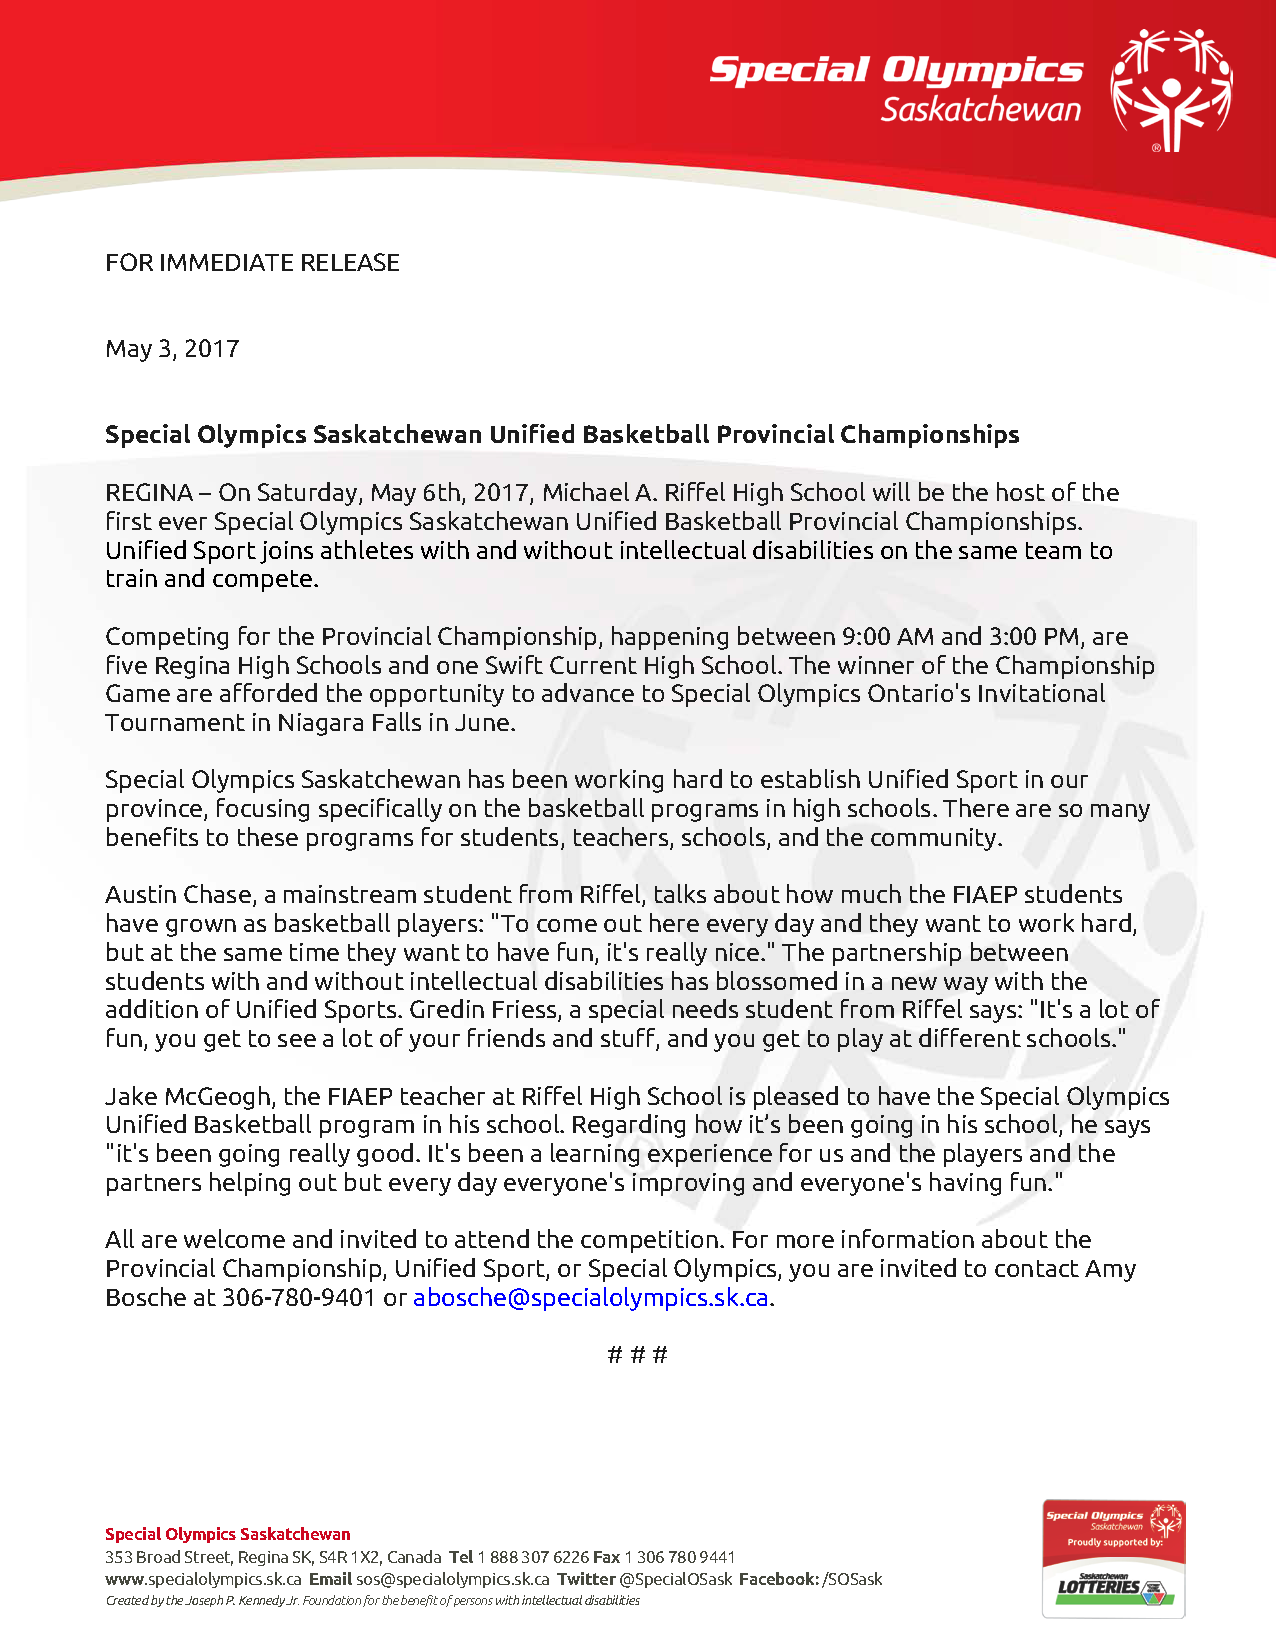 FOR IMMEDIATE RELEASE - Special Olympics Saskatchewan Unified Basketball Provincial Championships_Page_1